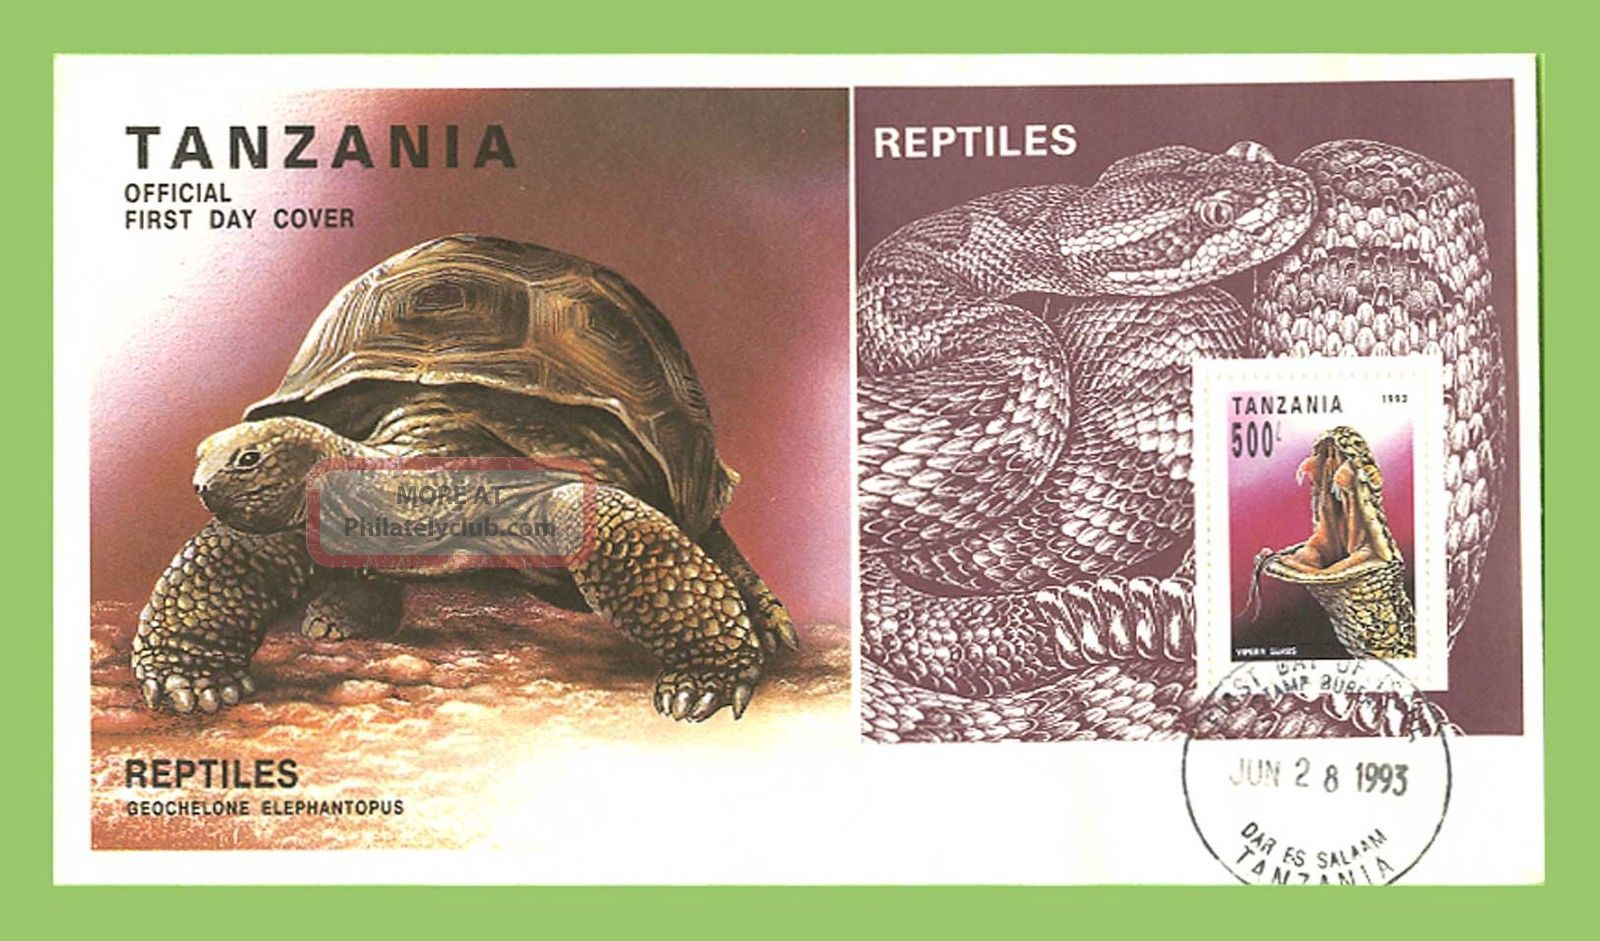 Tanzania 1993 Reptiles,  Snake Miniature Sheet On First Day Cover Africa photo